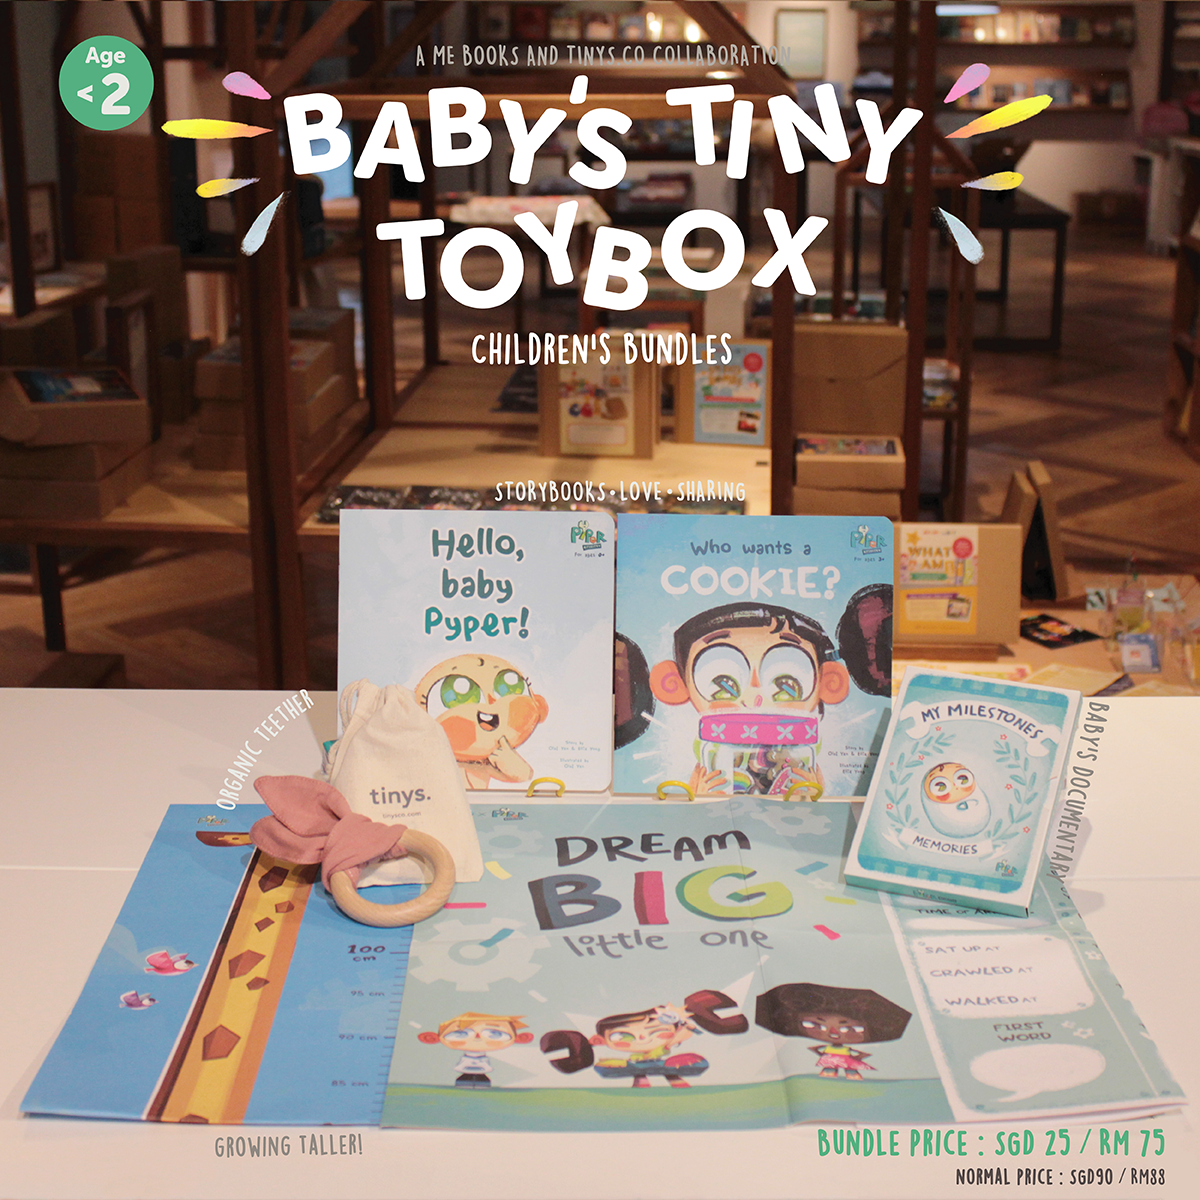 Baby's Tiny ToyBox Children's Bundle